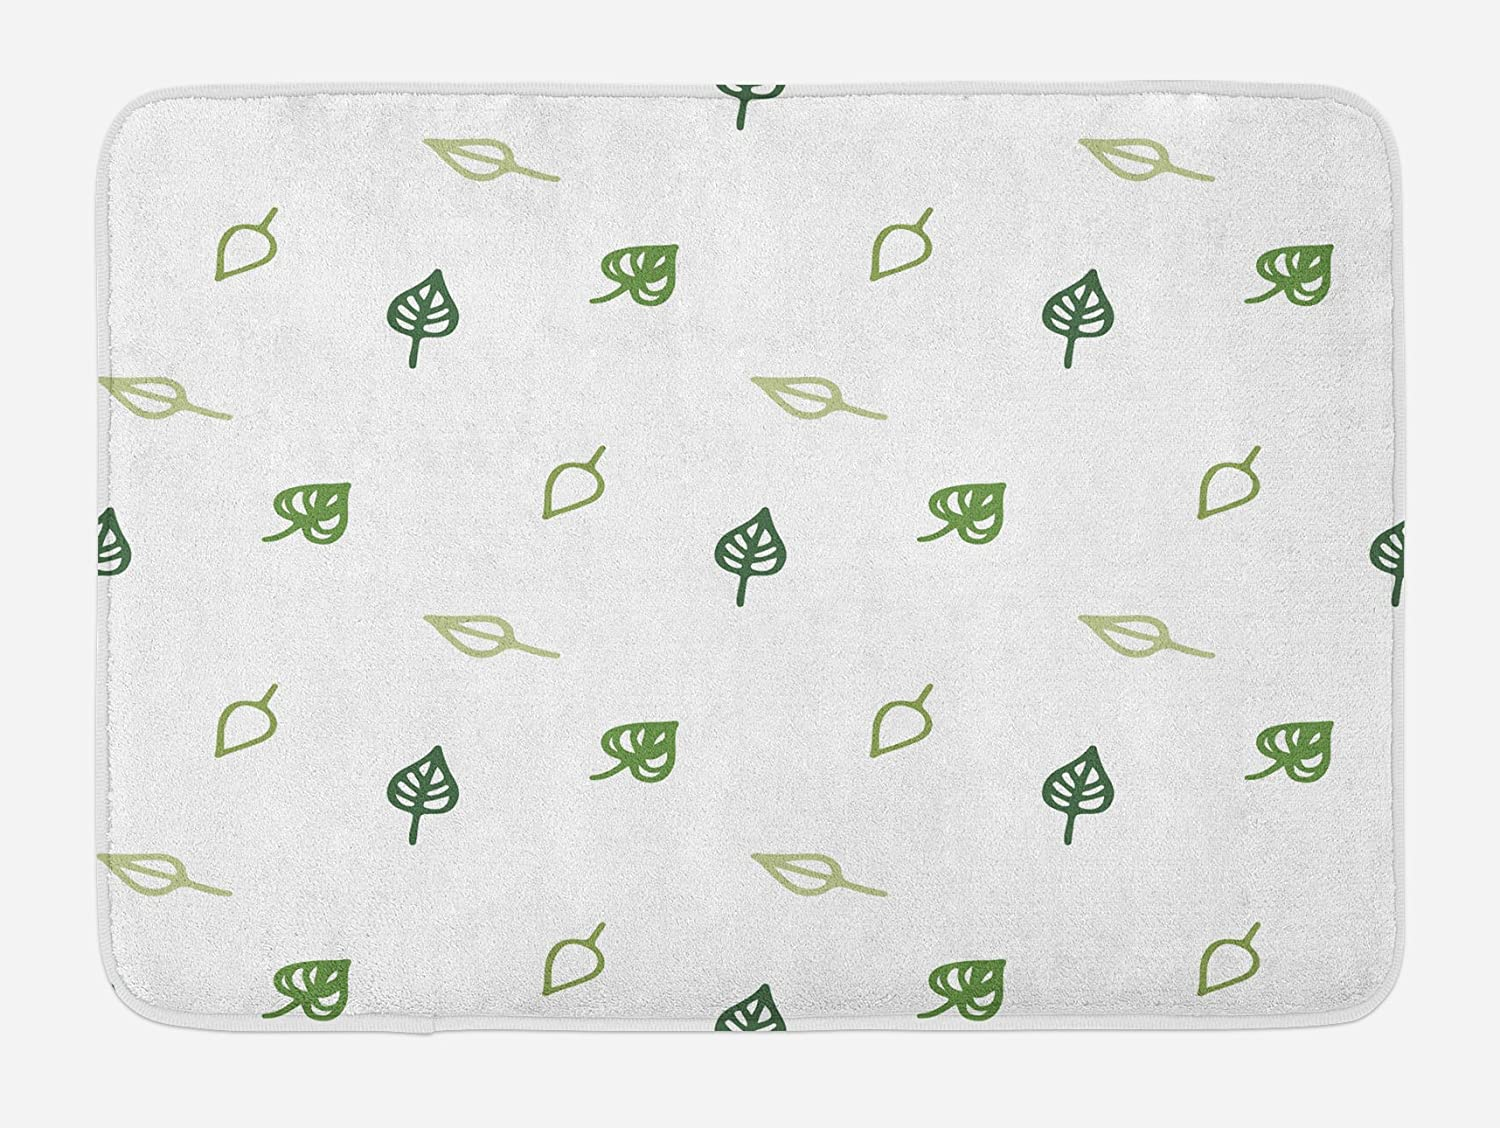 Ambesonne Leaf Bath Mat, Modern and Minimalistic Leaves Style with Abstract Pattern Design Image Print, Plush Bathroom Decor Mat with Non Slip Backing, 29.5